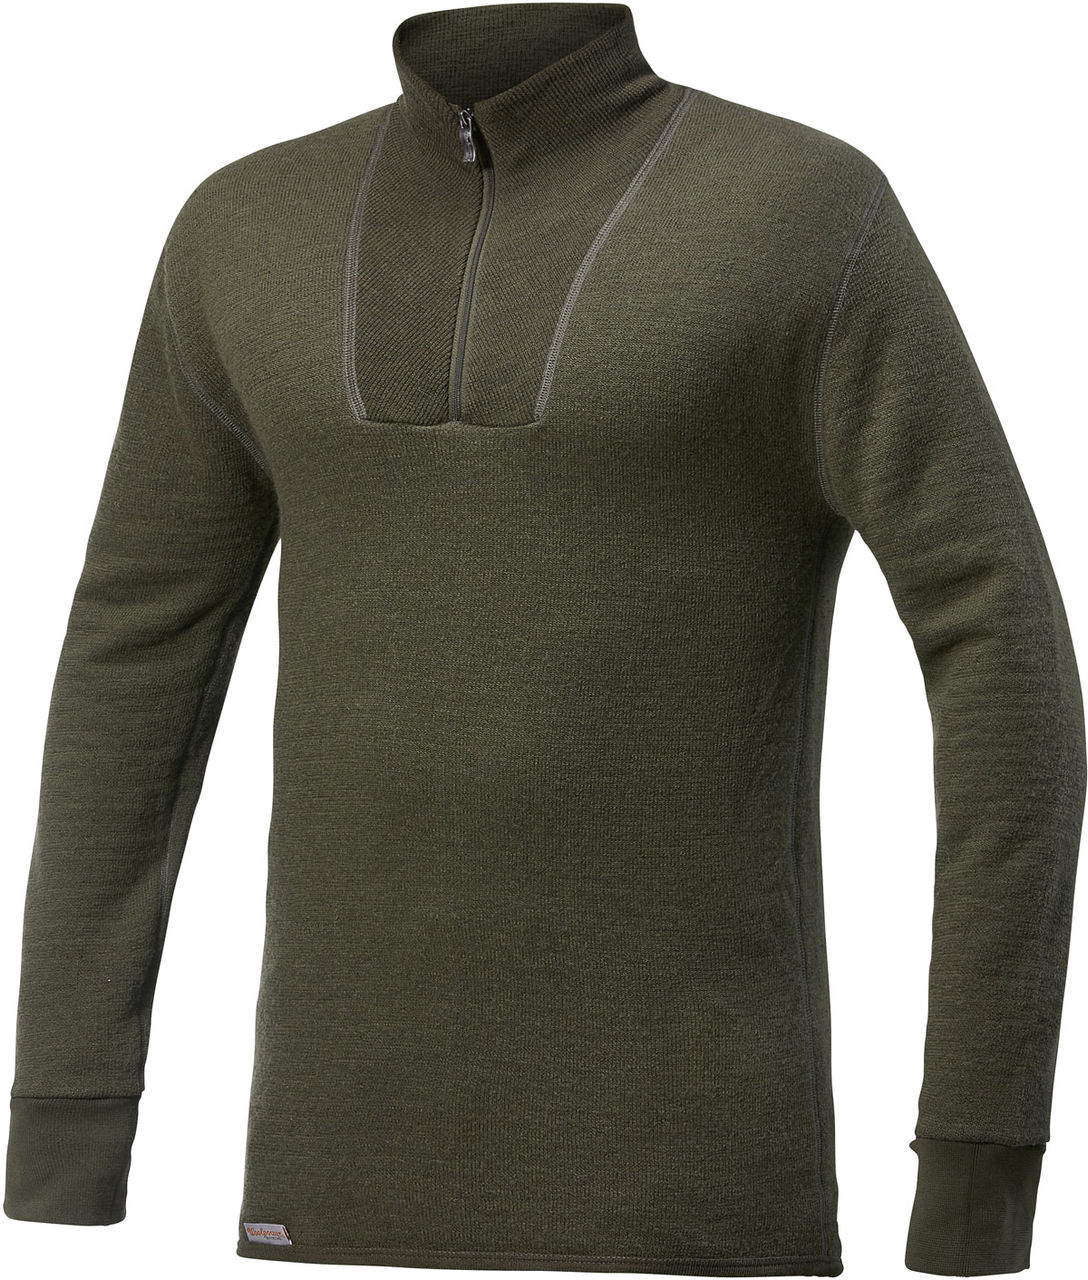 Woolpower Ullfrotte Original Turtleneck 200g Pine Green